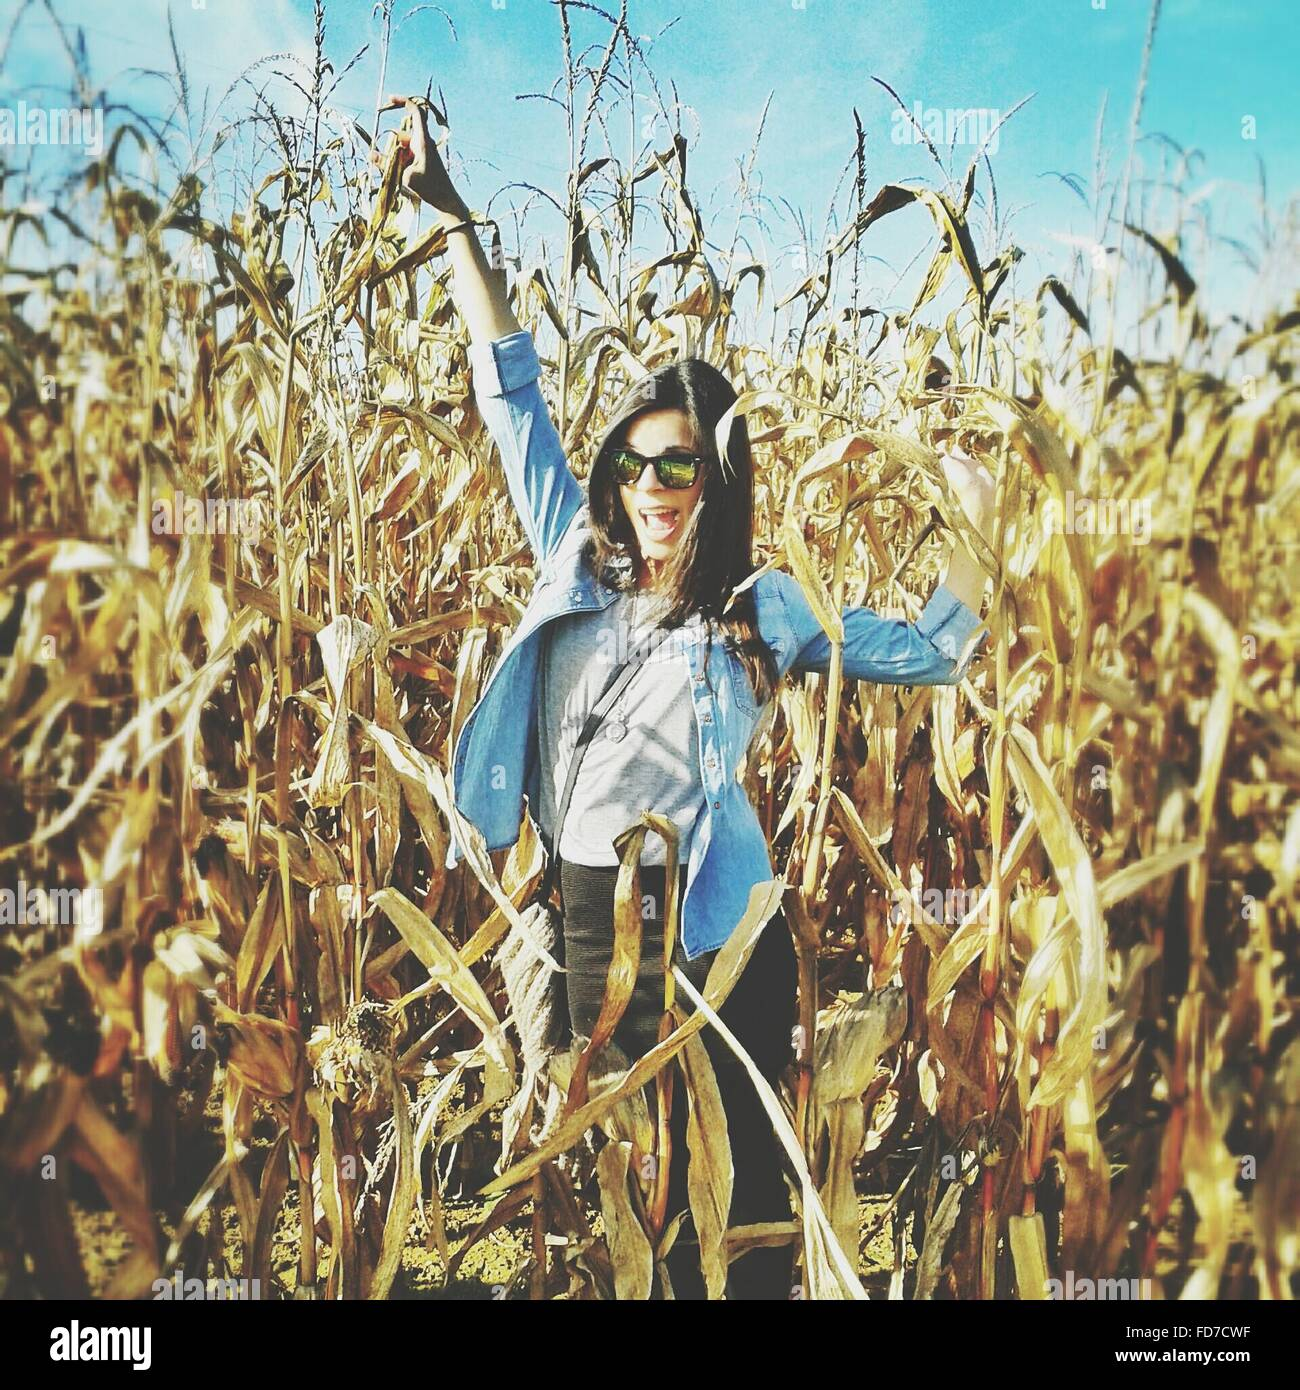 Portrait Of Happy Woman In Agricultural Field - Stock Image